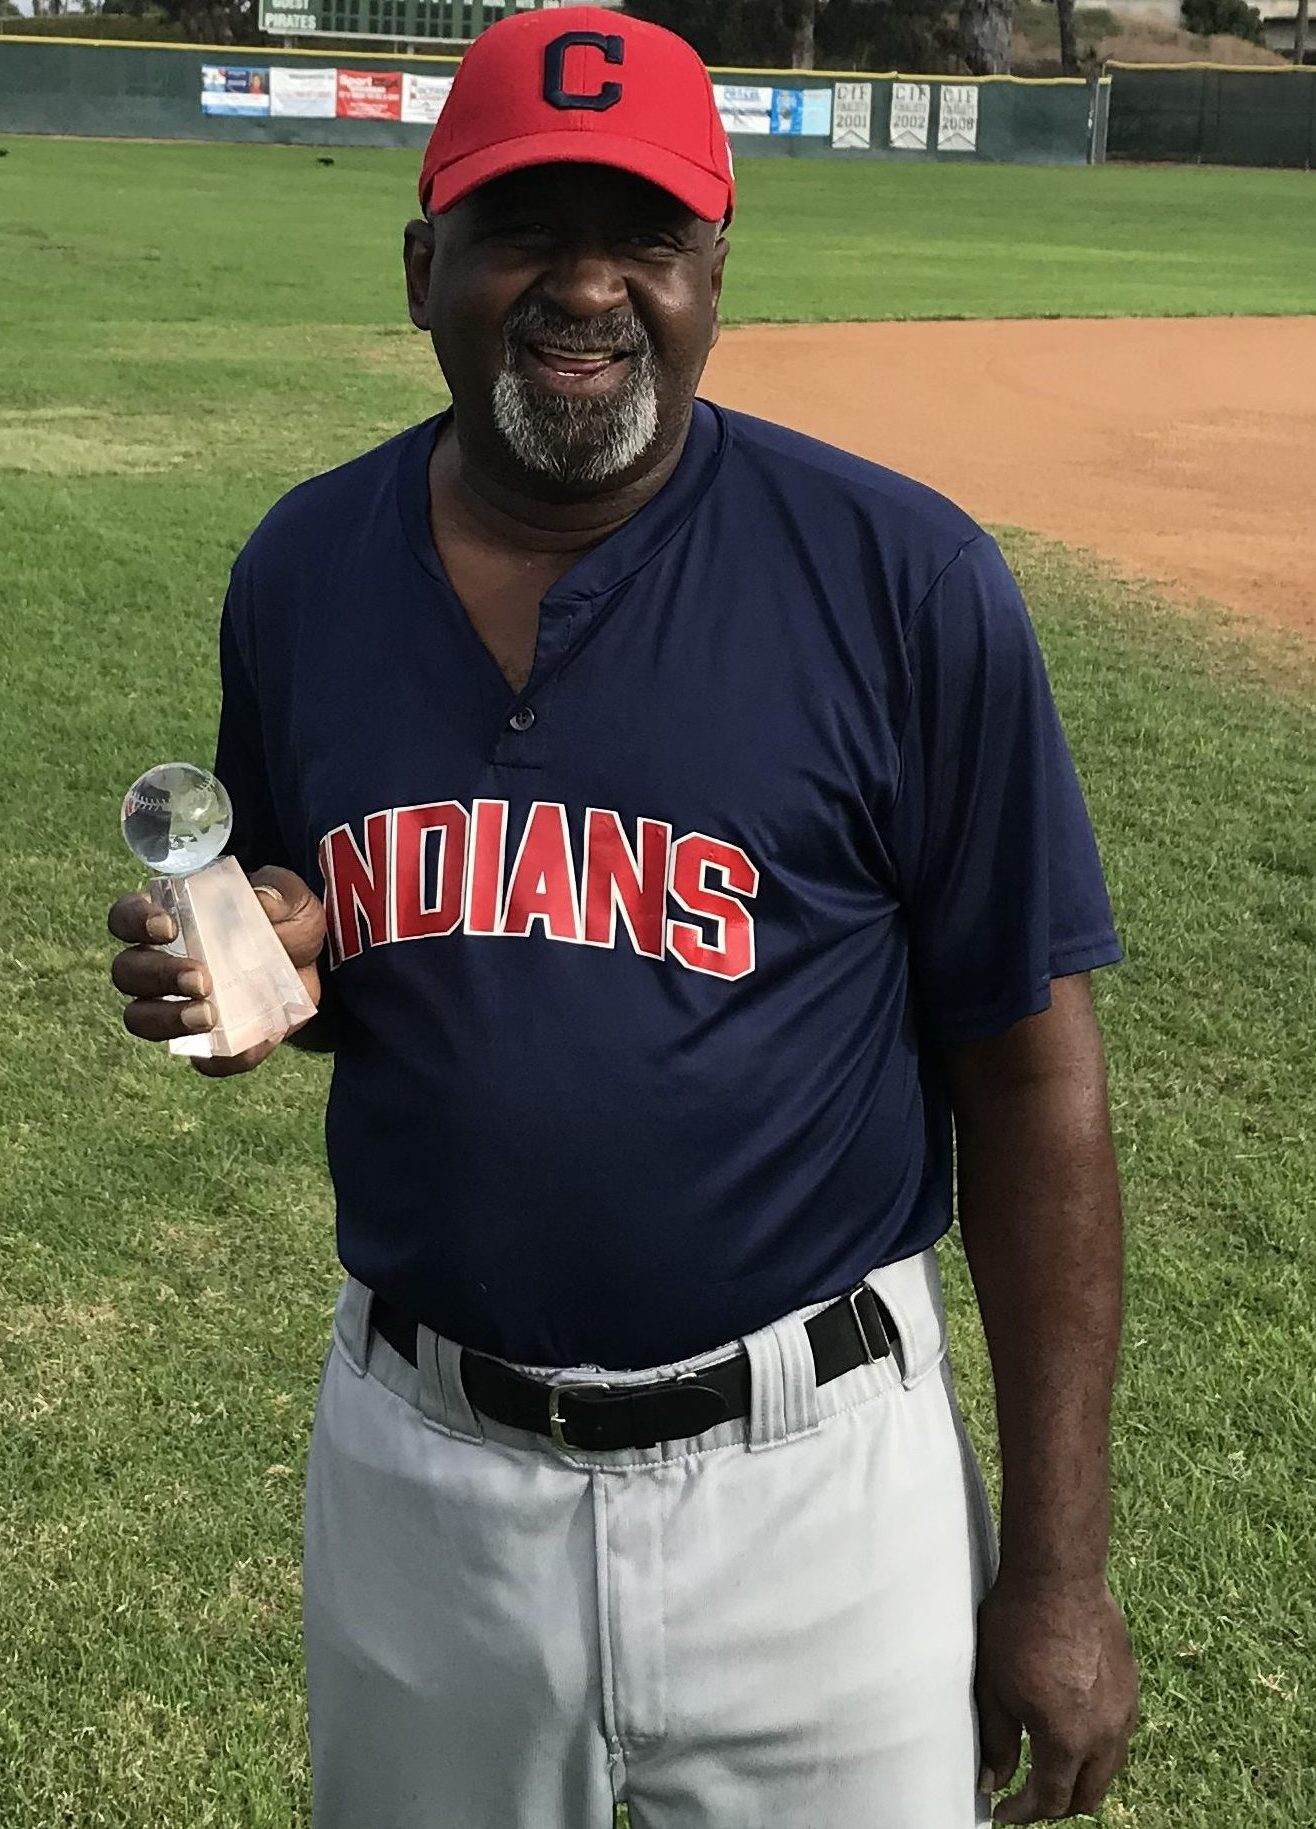 2018 REAL PROPERTY STAR MVP SUMMER MSBL 62+DIVISION INDIANS LV MCCREE